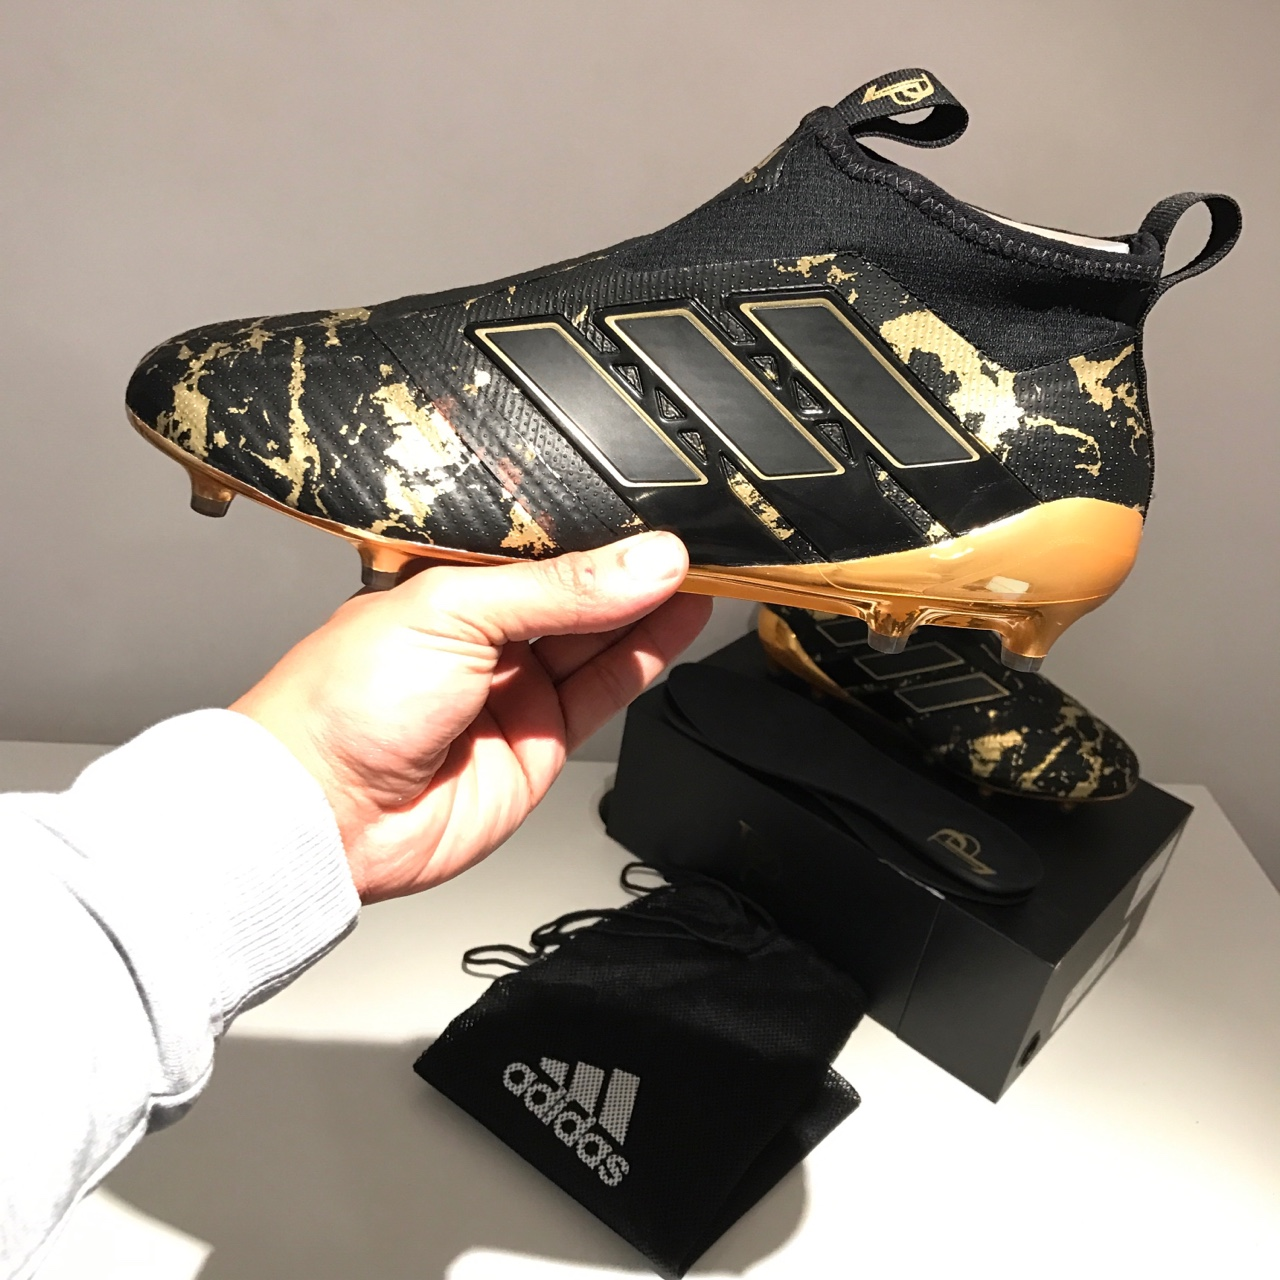 wholesale dealer 1cd6b af0ed Adidas x Paul Pogba ACE 17+ Purecontrol FG Football ...